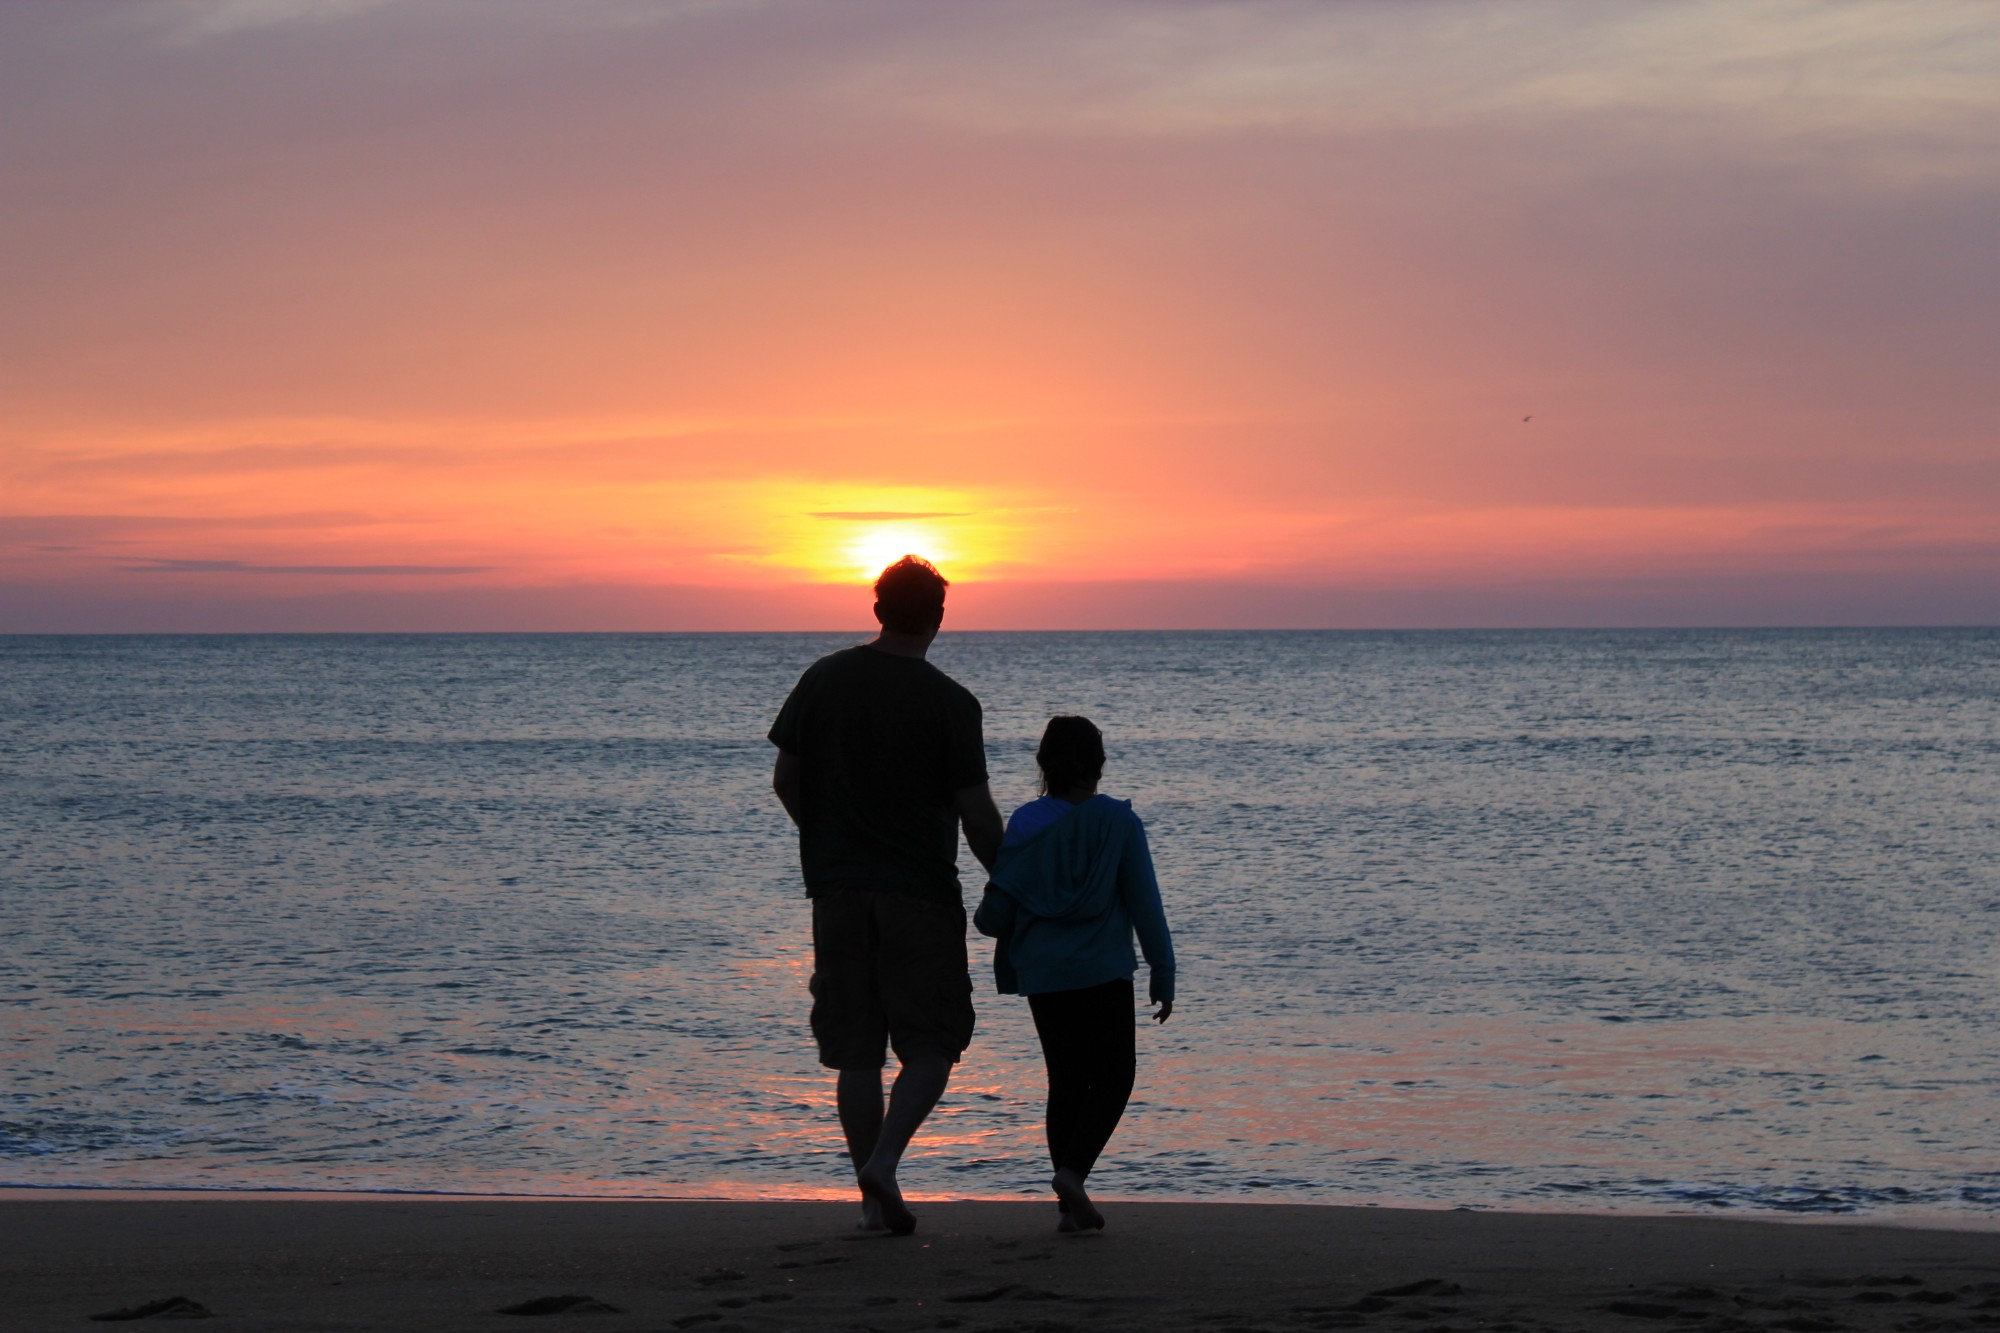 man and girl/young woman walking into a watery sunset with their backs to the camera